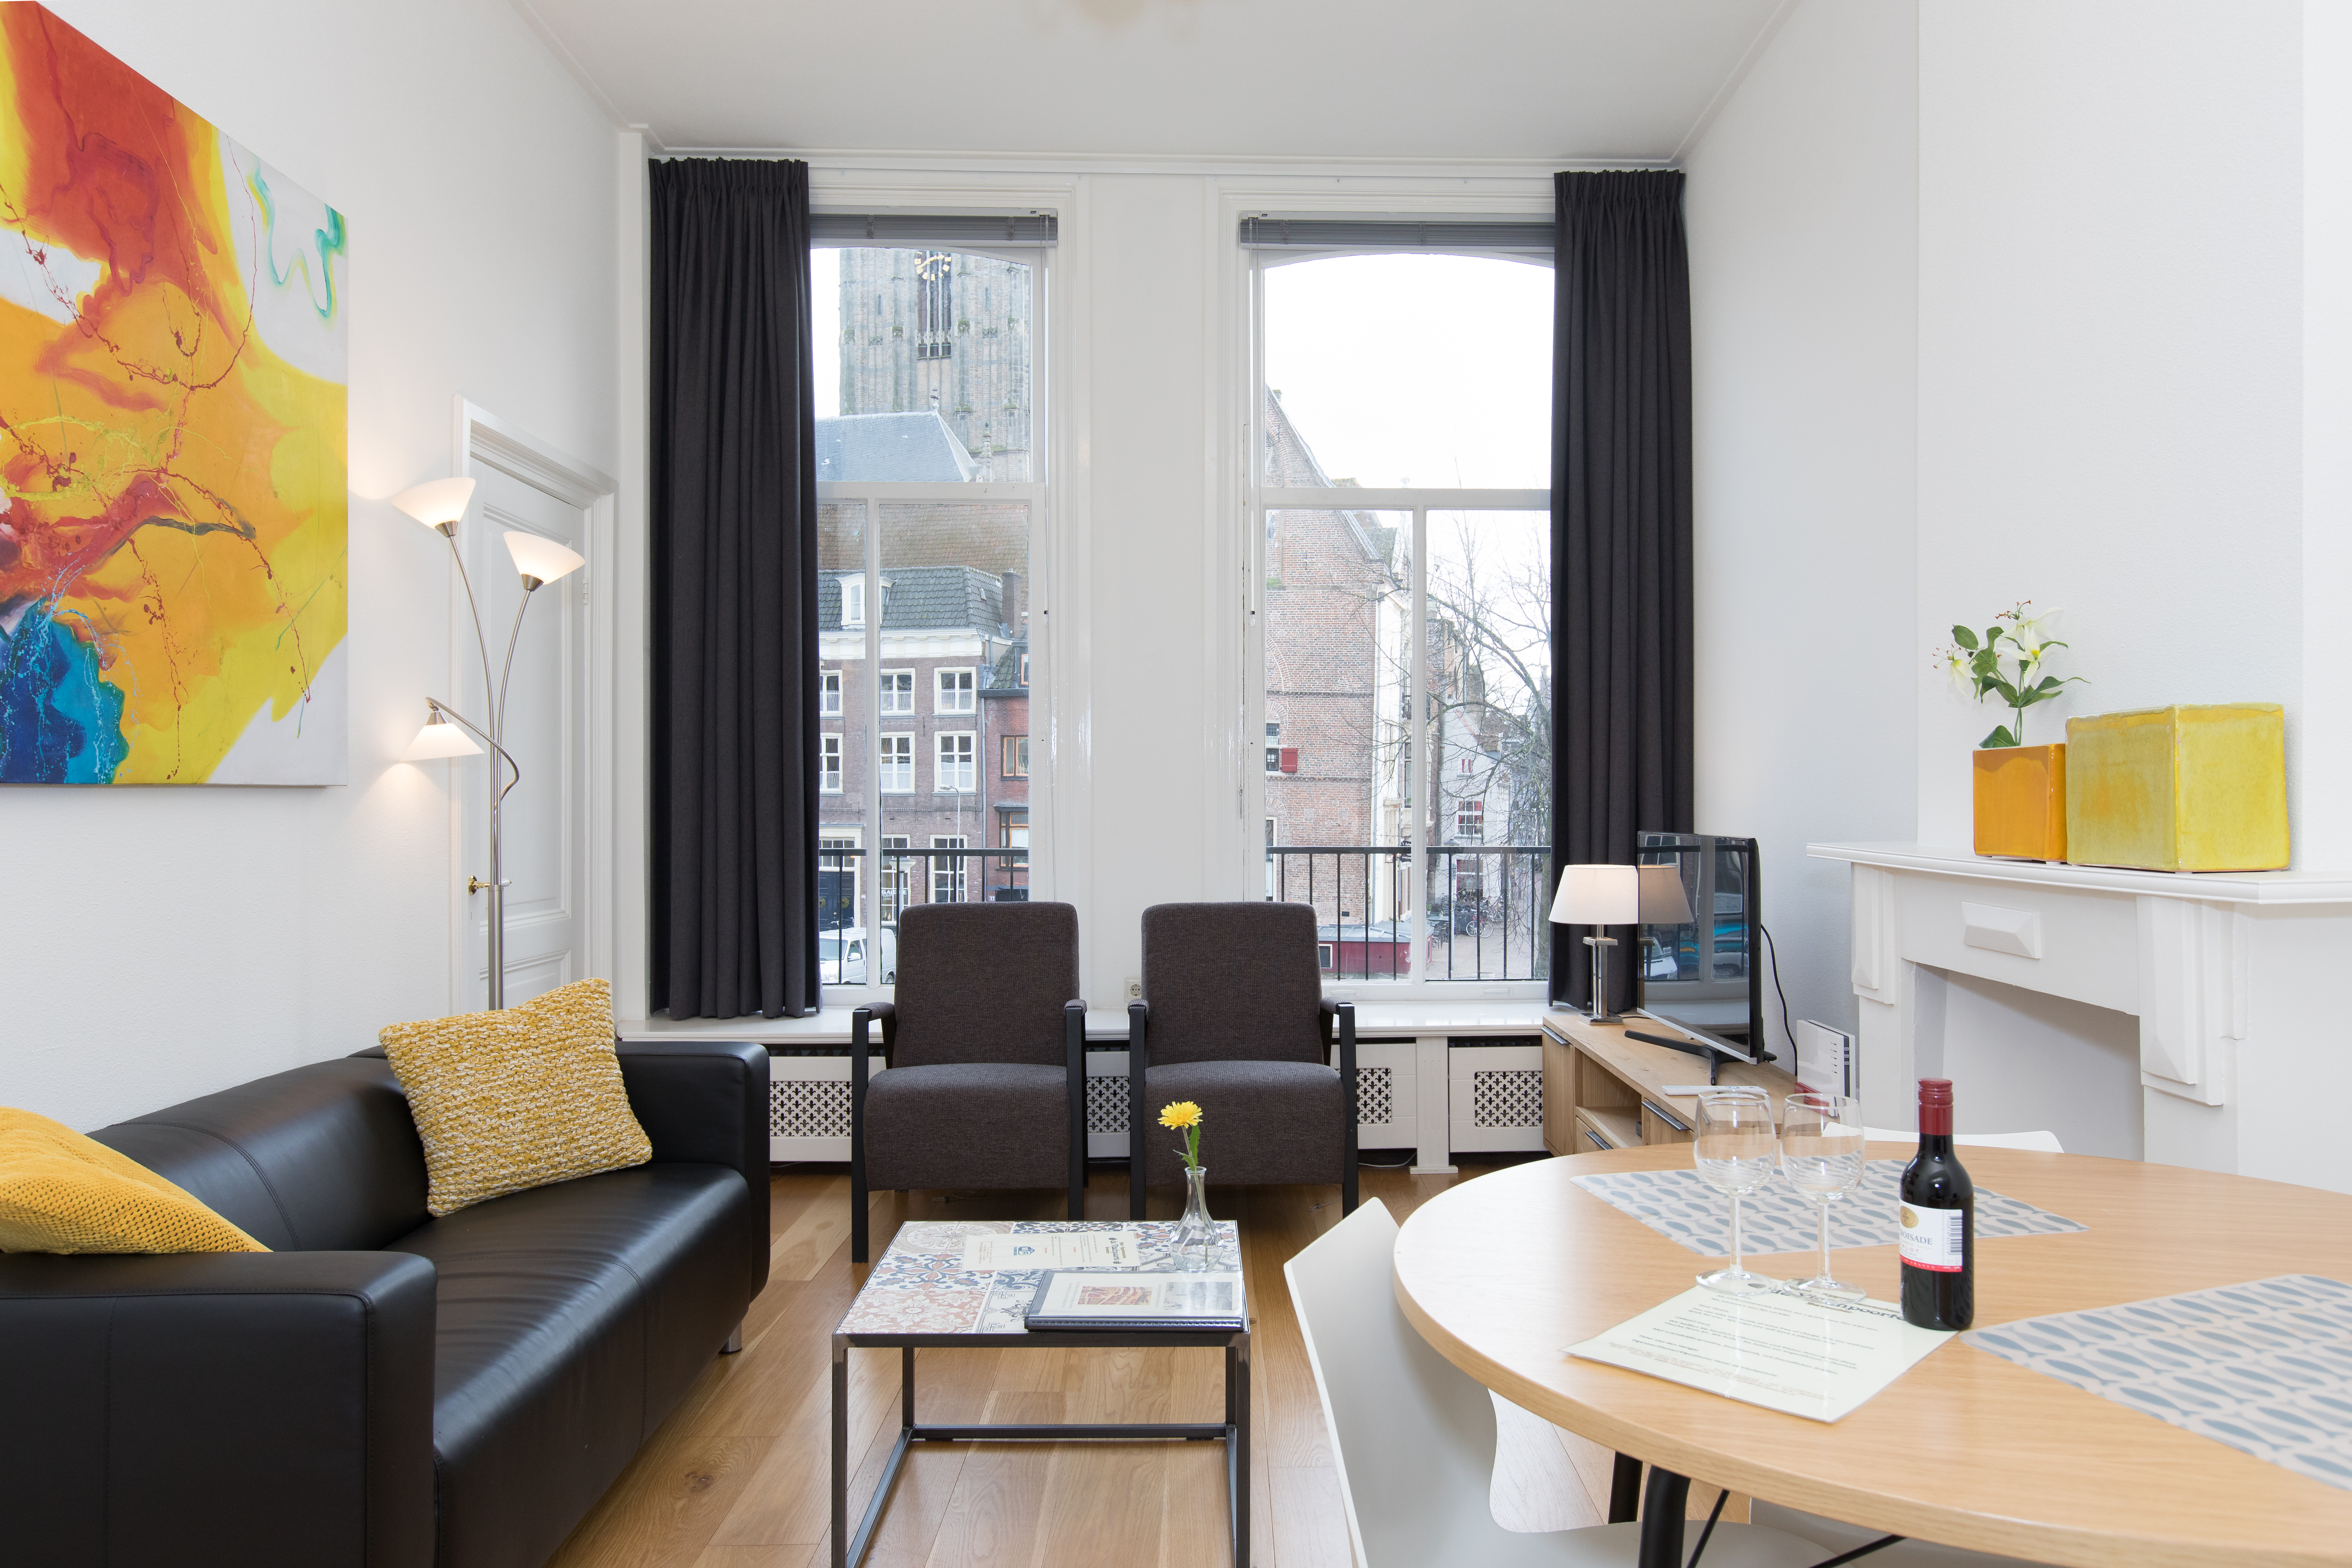 Slaapkamer Hotel Look : Apartment two bedrooms with view on the old church hotel vischpoorte